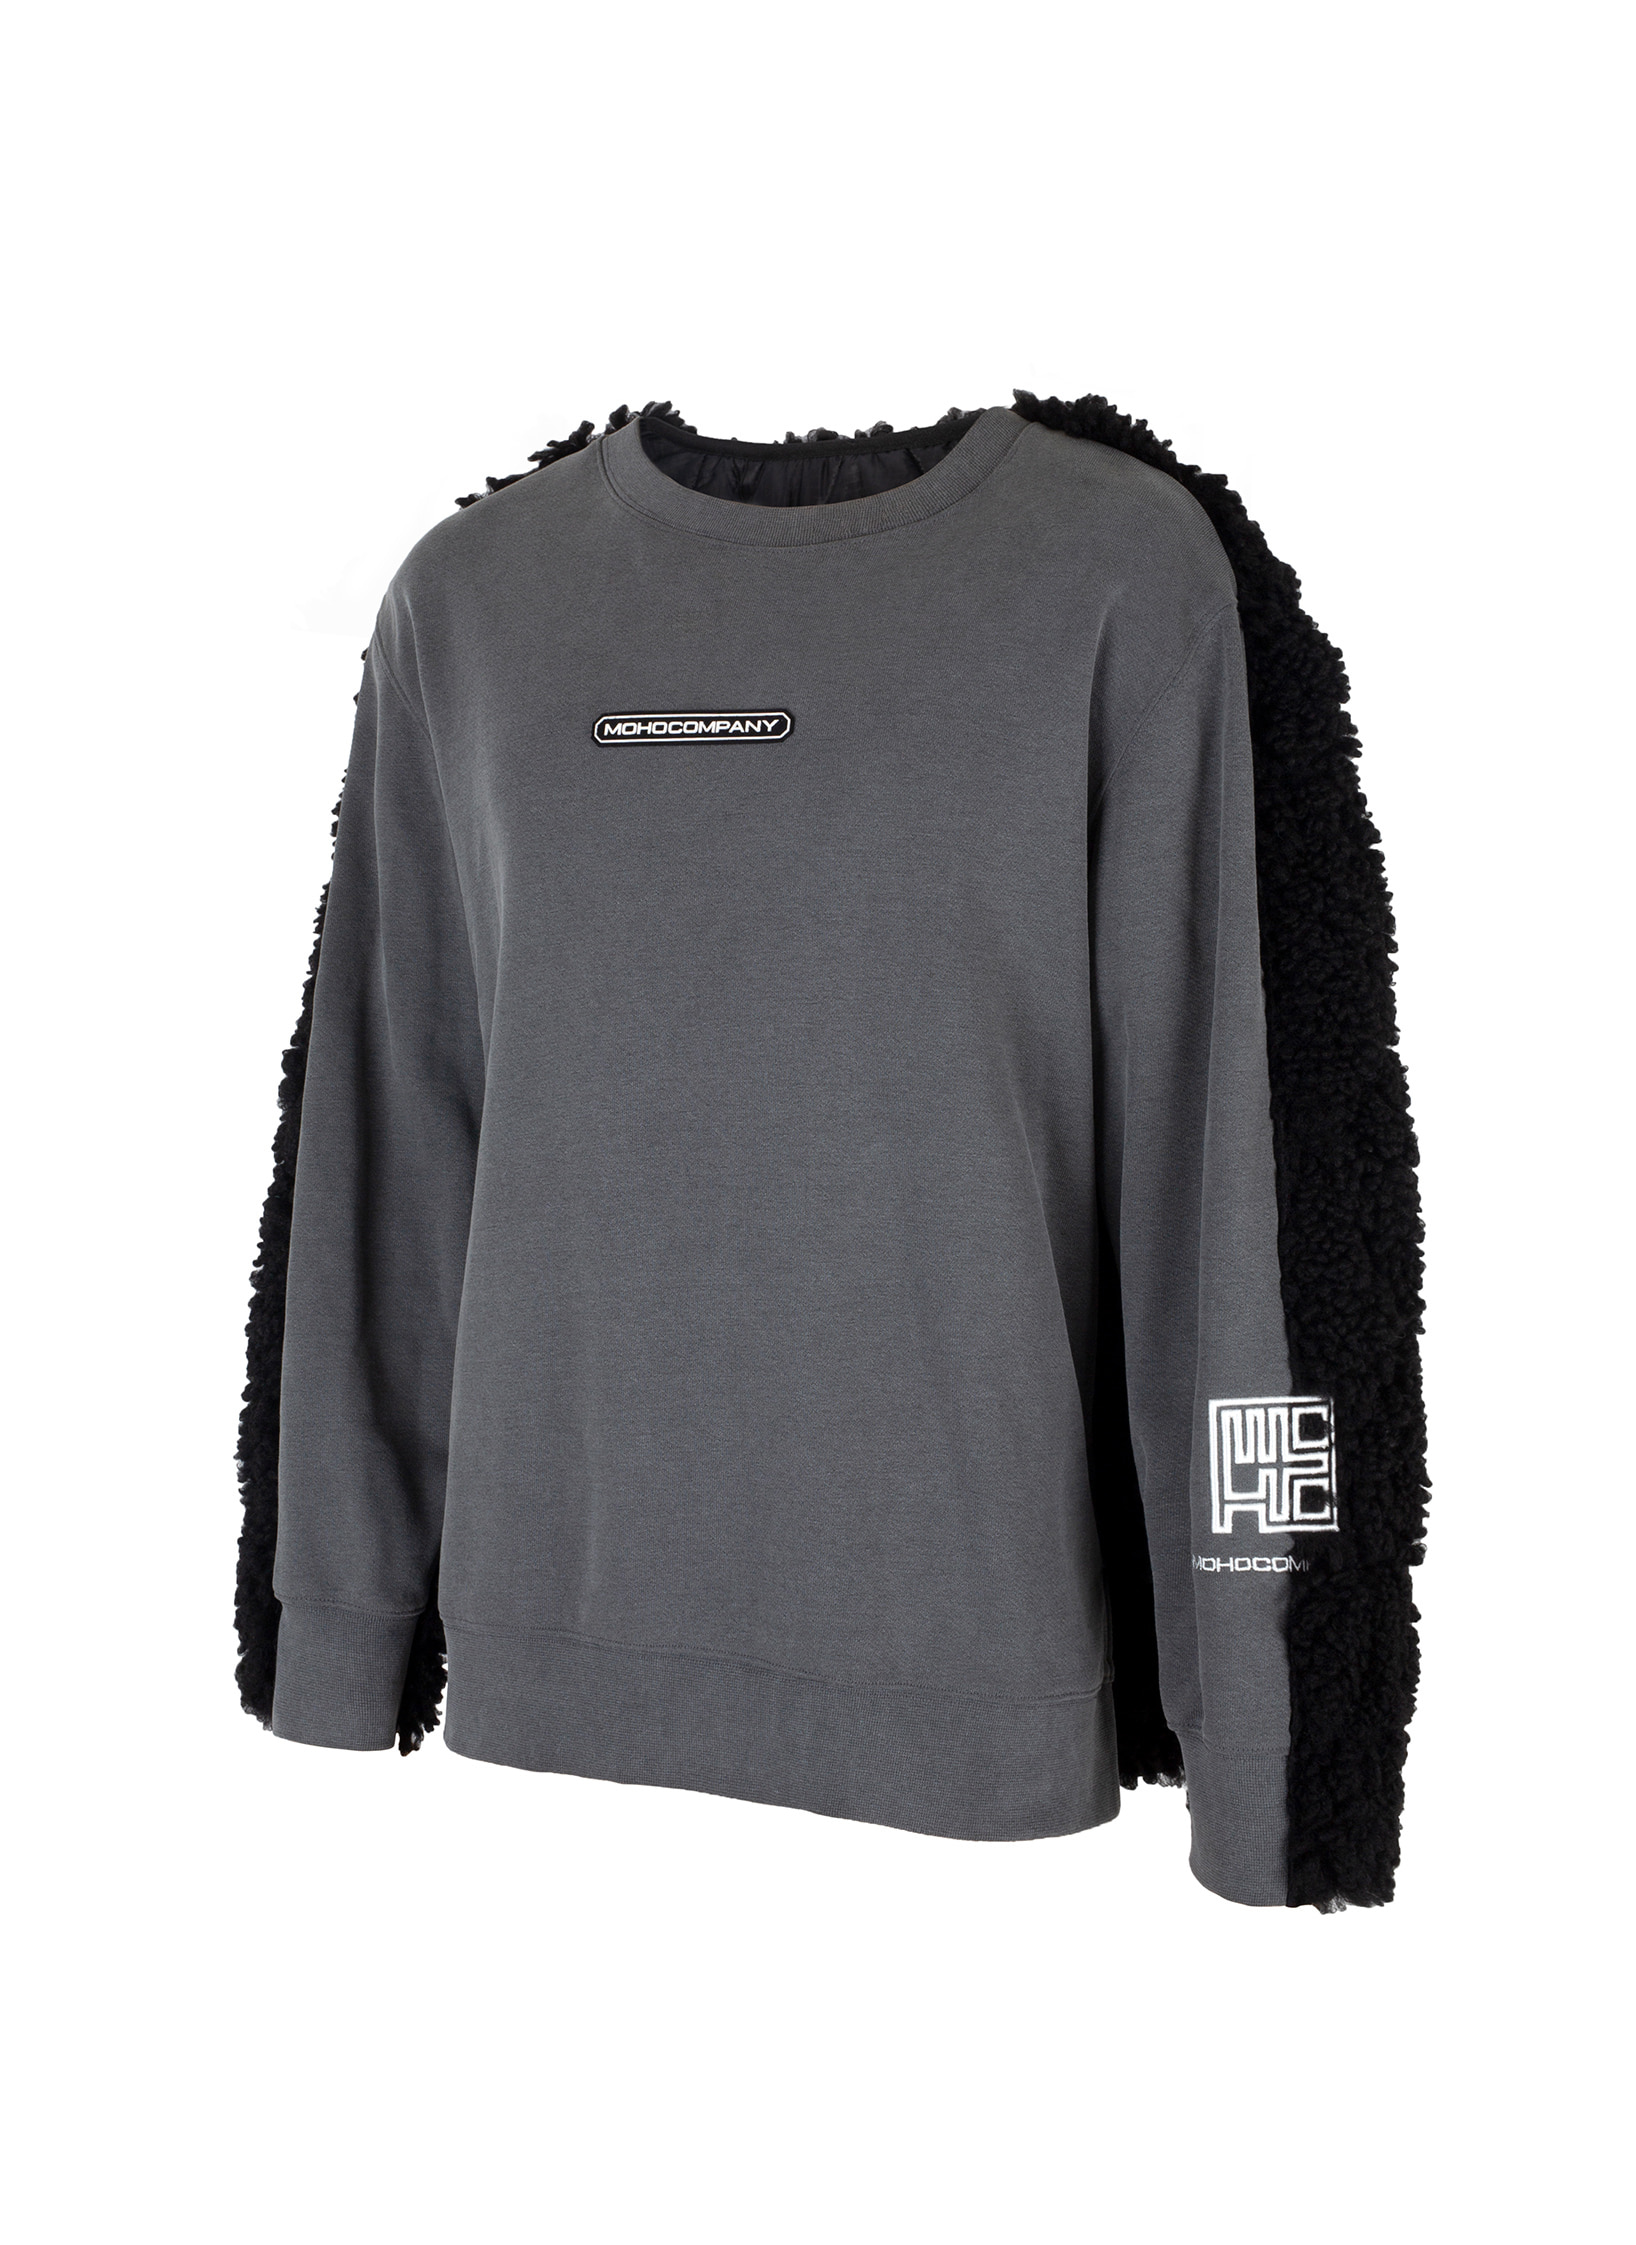 CONTRAST BACK FLEECE SWEATSHIRT